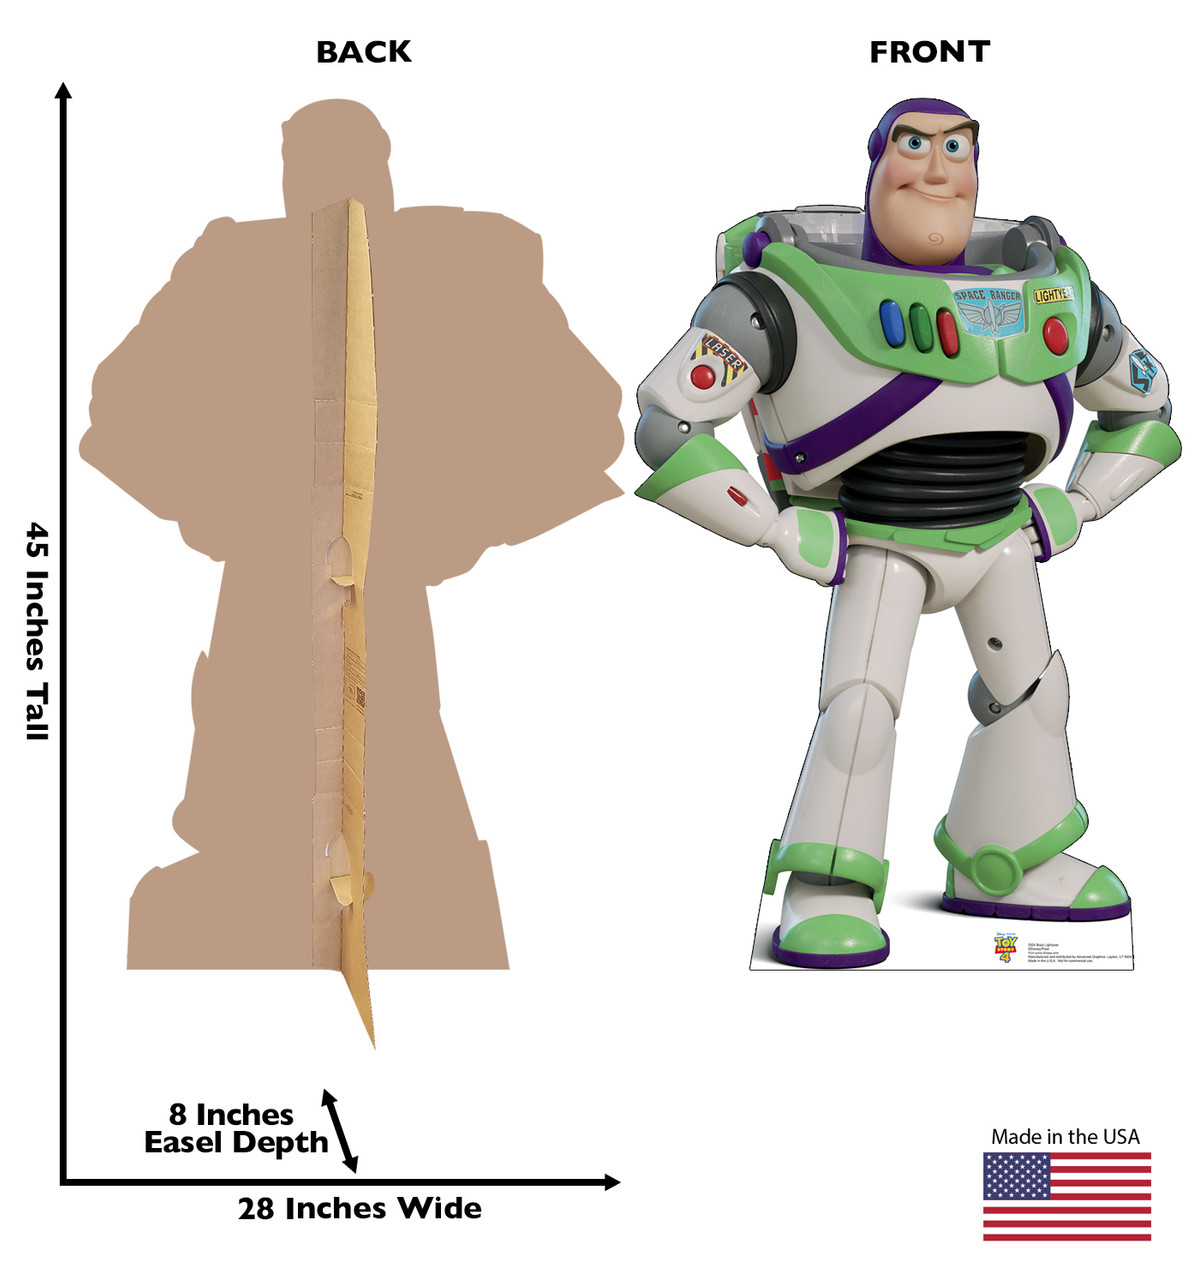 Buzz Lightyear - Toy Story 4 Cardboard Cutout Front and Back View